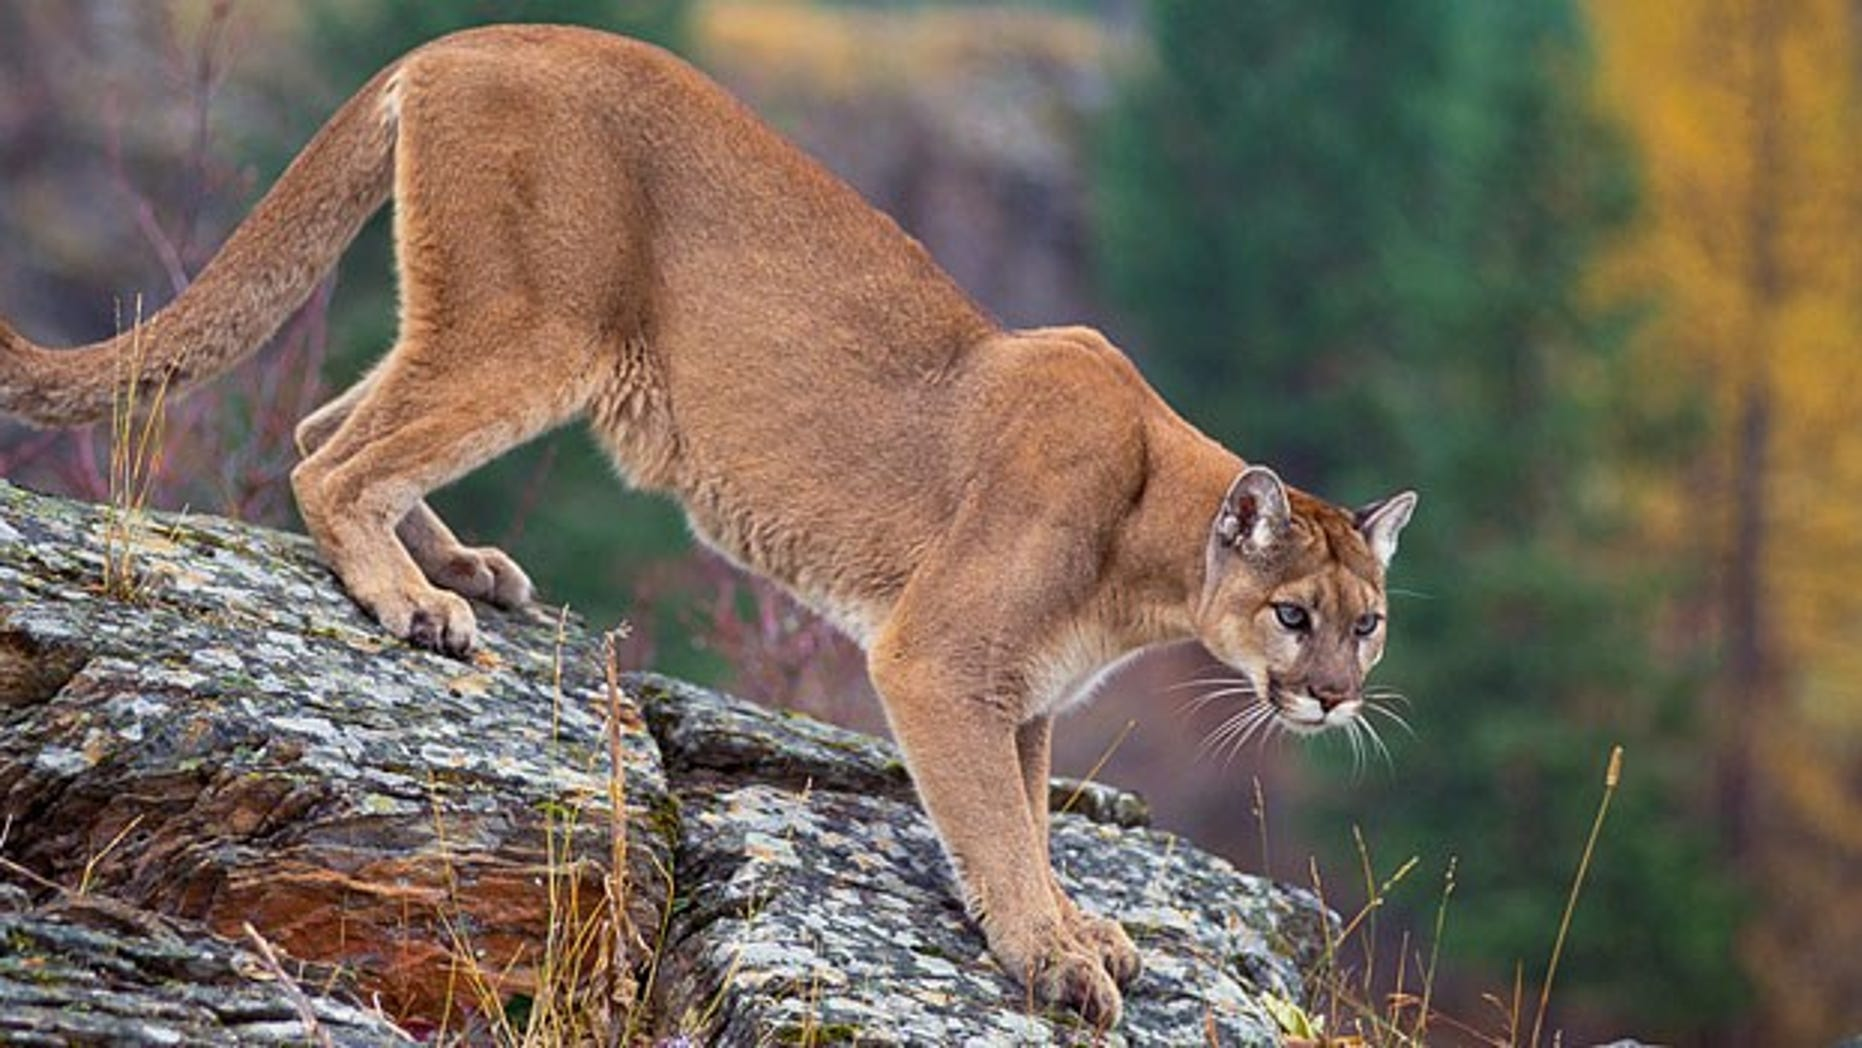 Runner kills mountain lion after he was attacked in Colorado